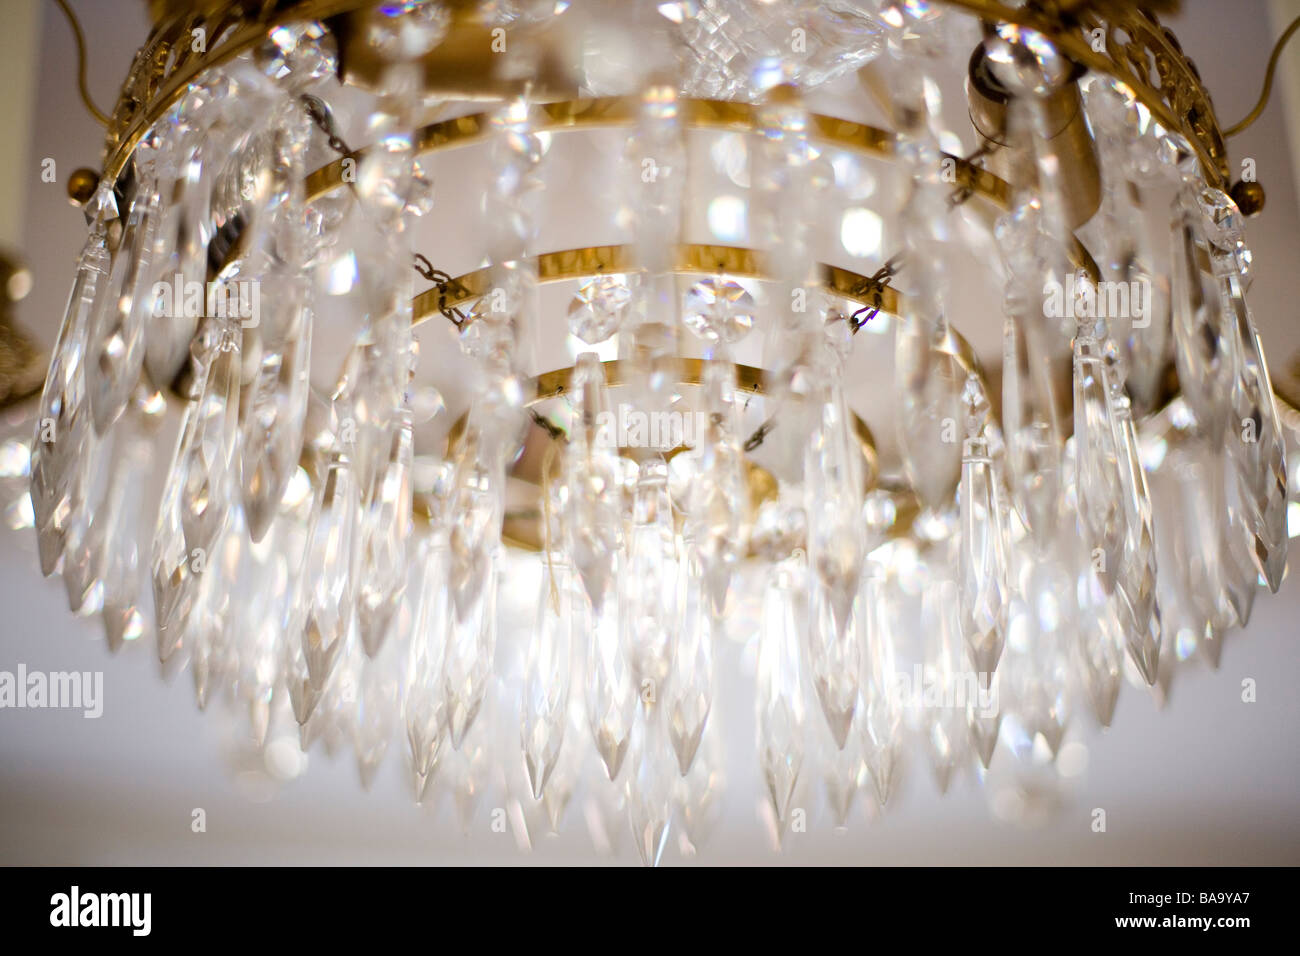 A cut glass chandelier sweden stock photo 23575951 alamy a cut glass chandelier sweden mozeypictures Images